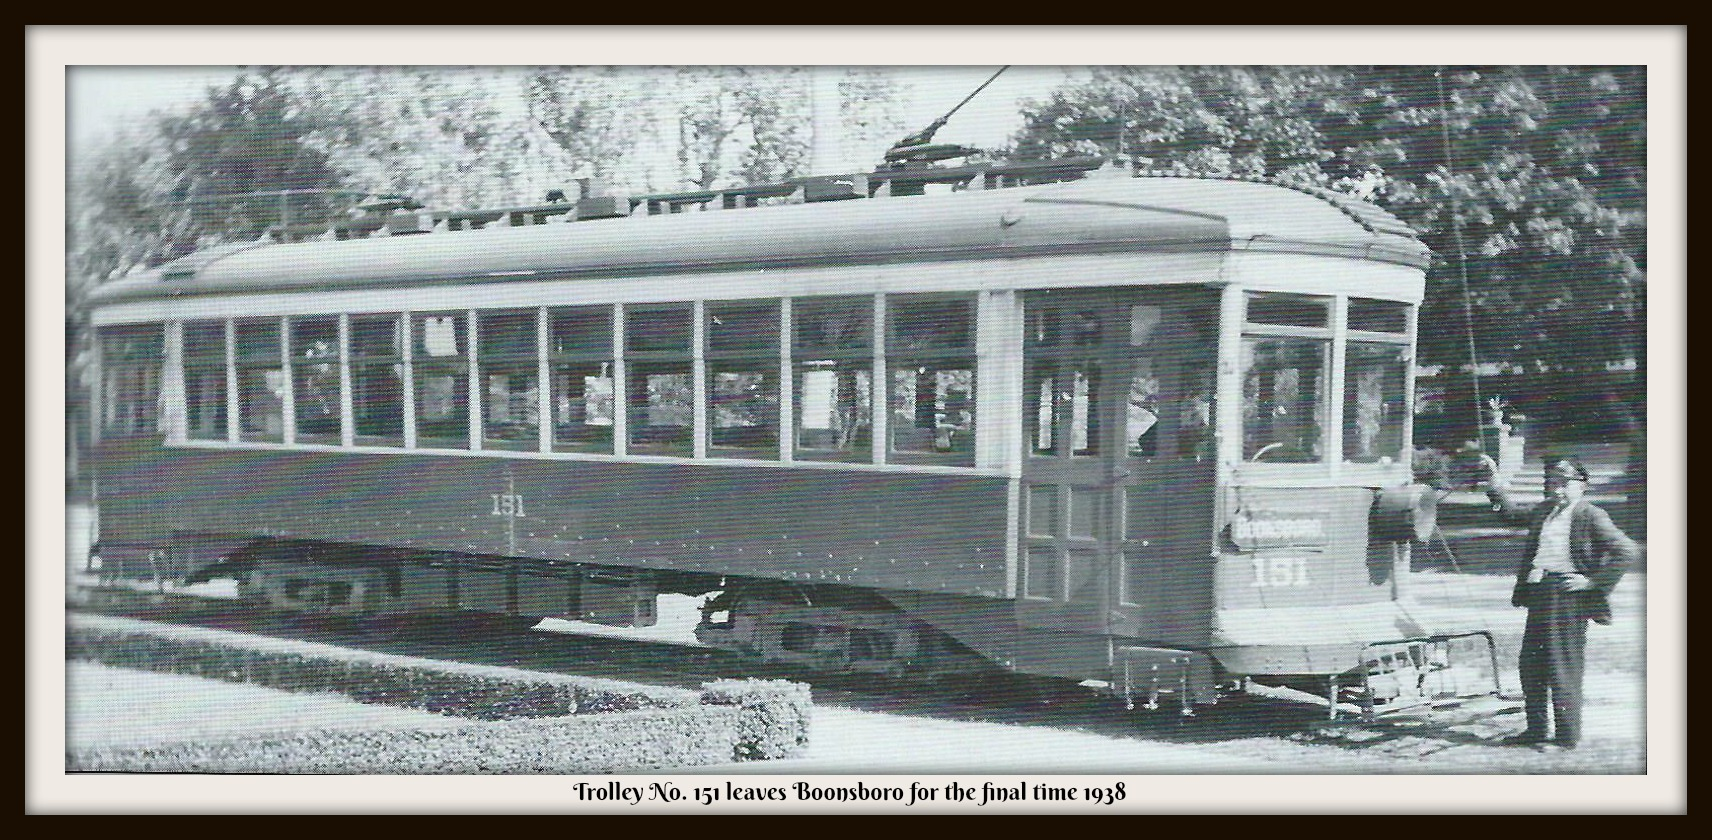 Boonsboro Reflections: The Boonsboro Trolley